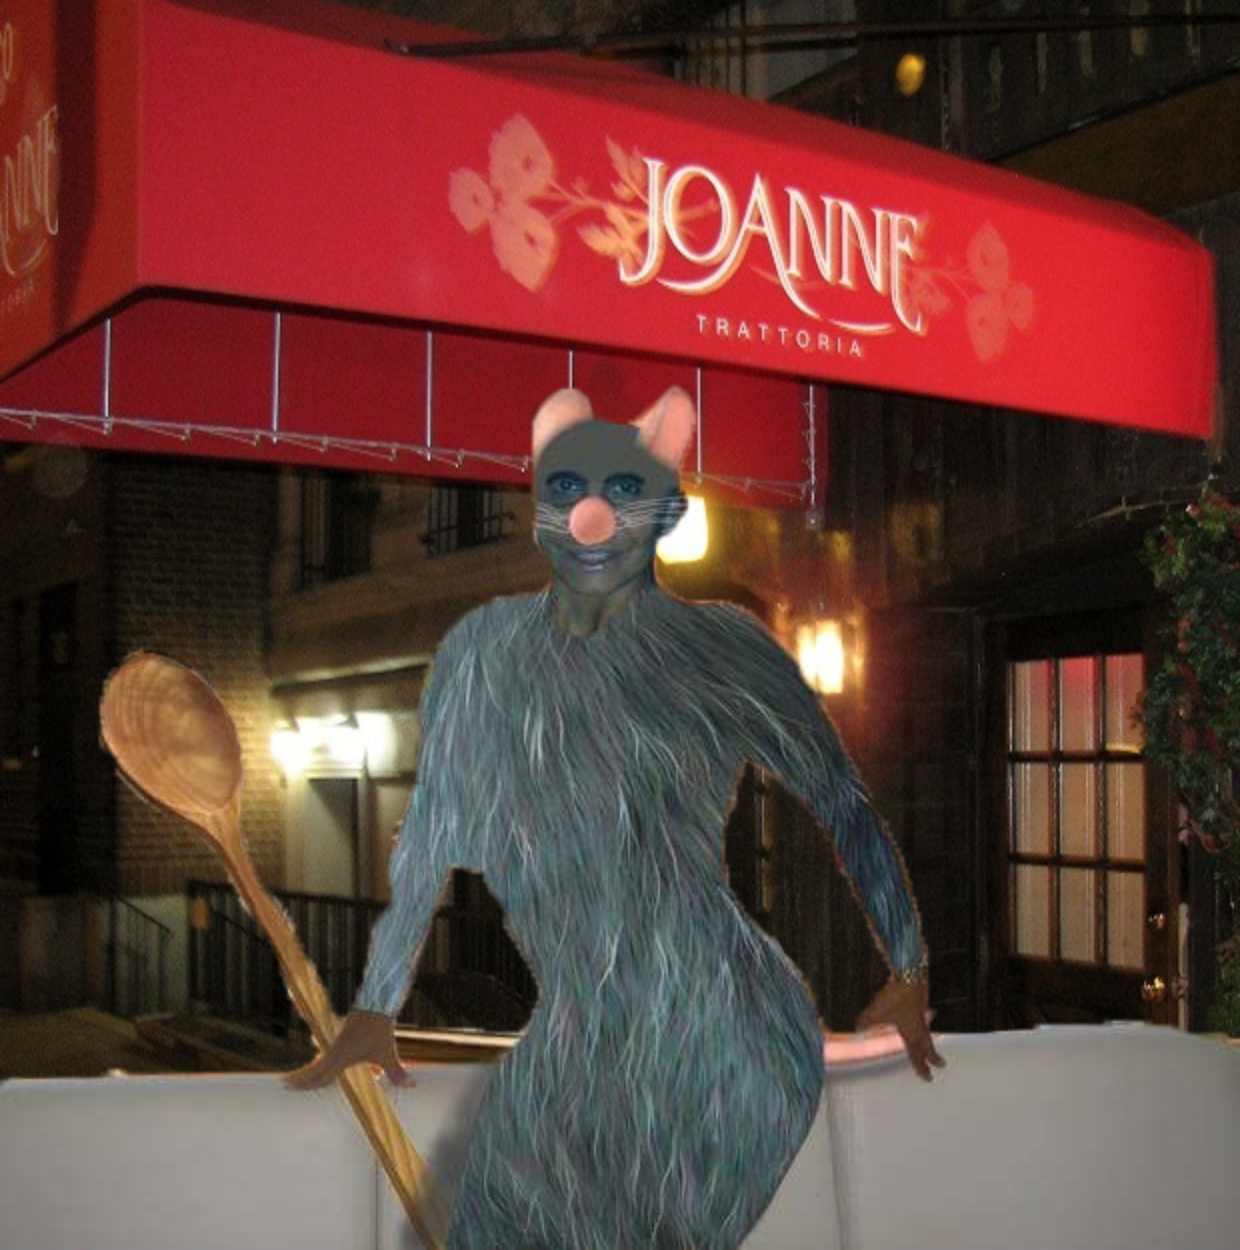 JOANNE-TRATTORIA.png?dl=1